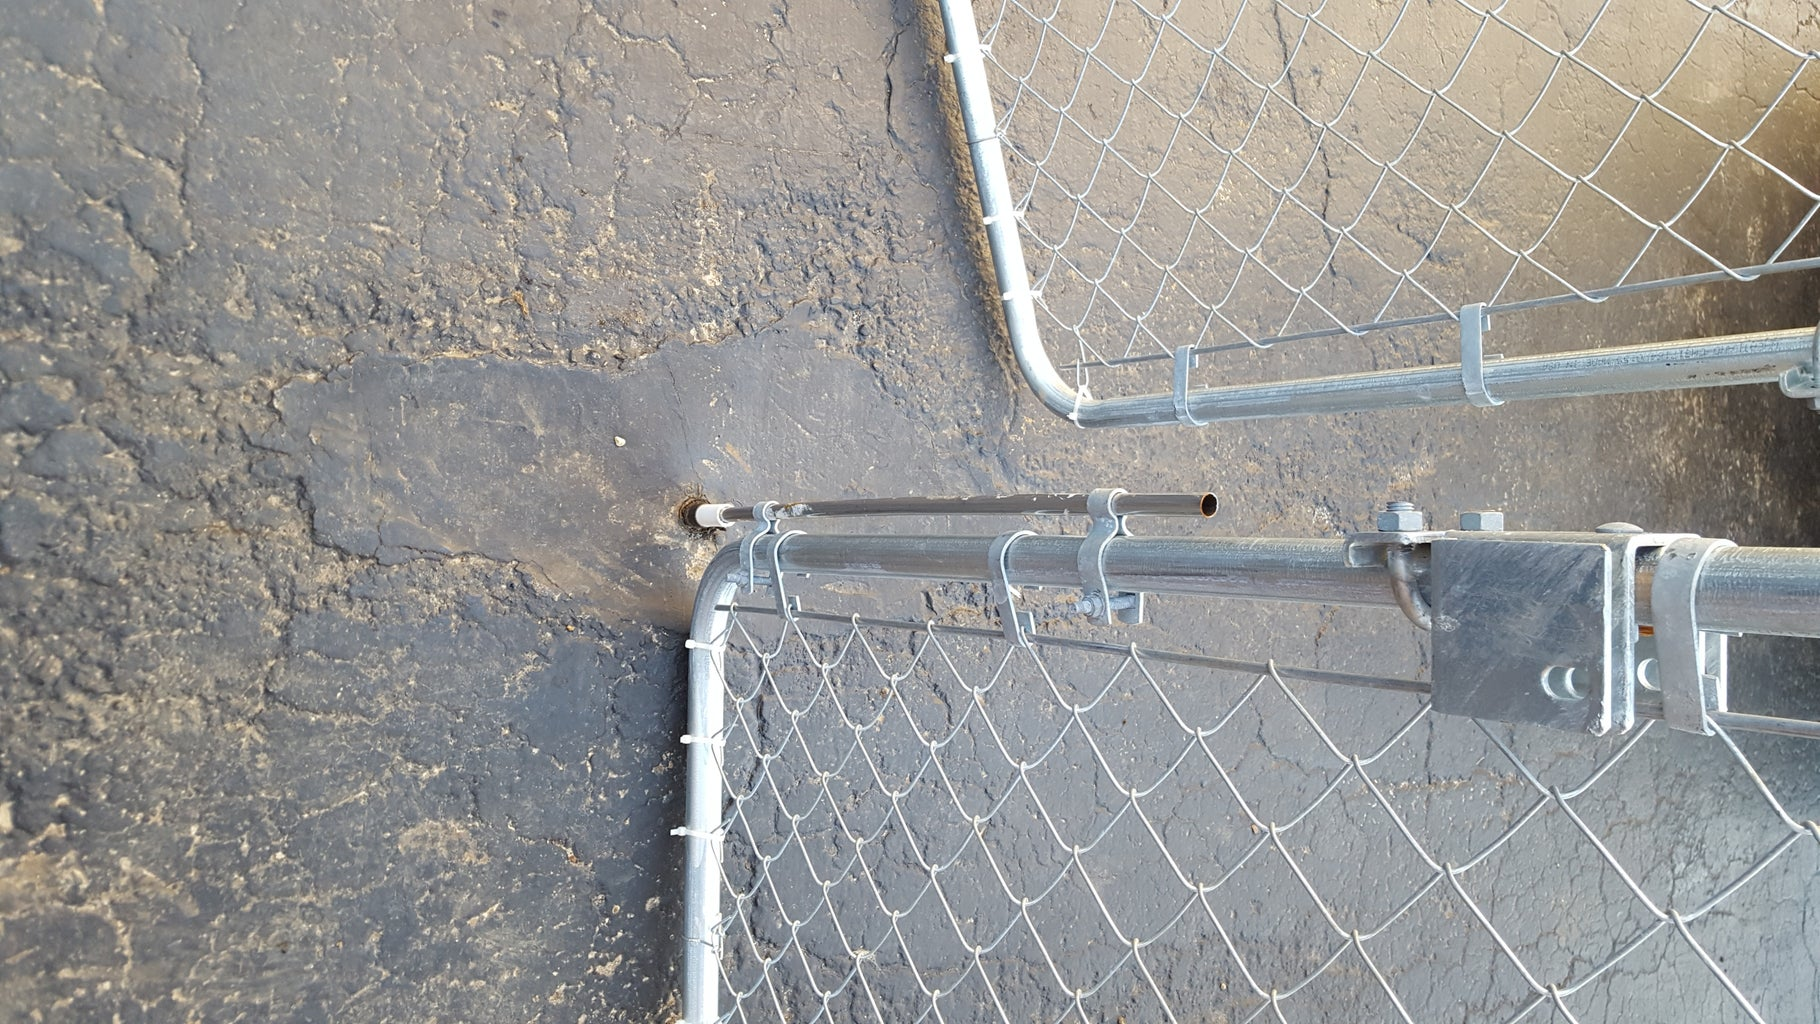 Add Rod to Secure One Side